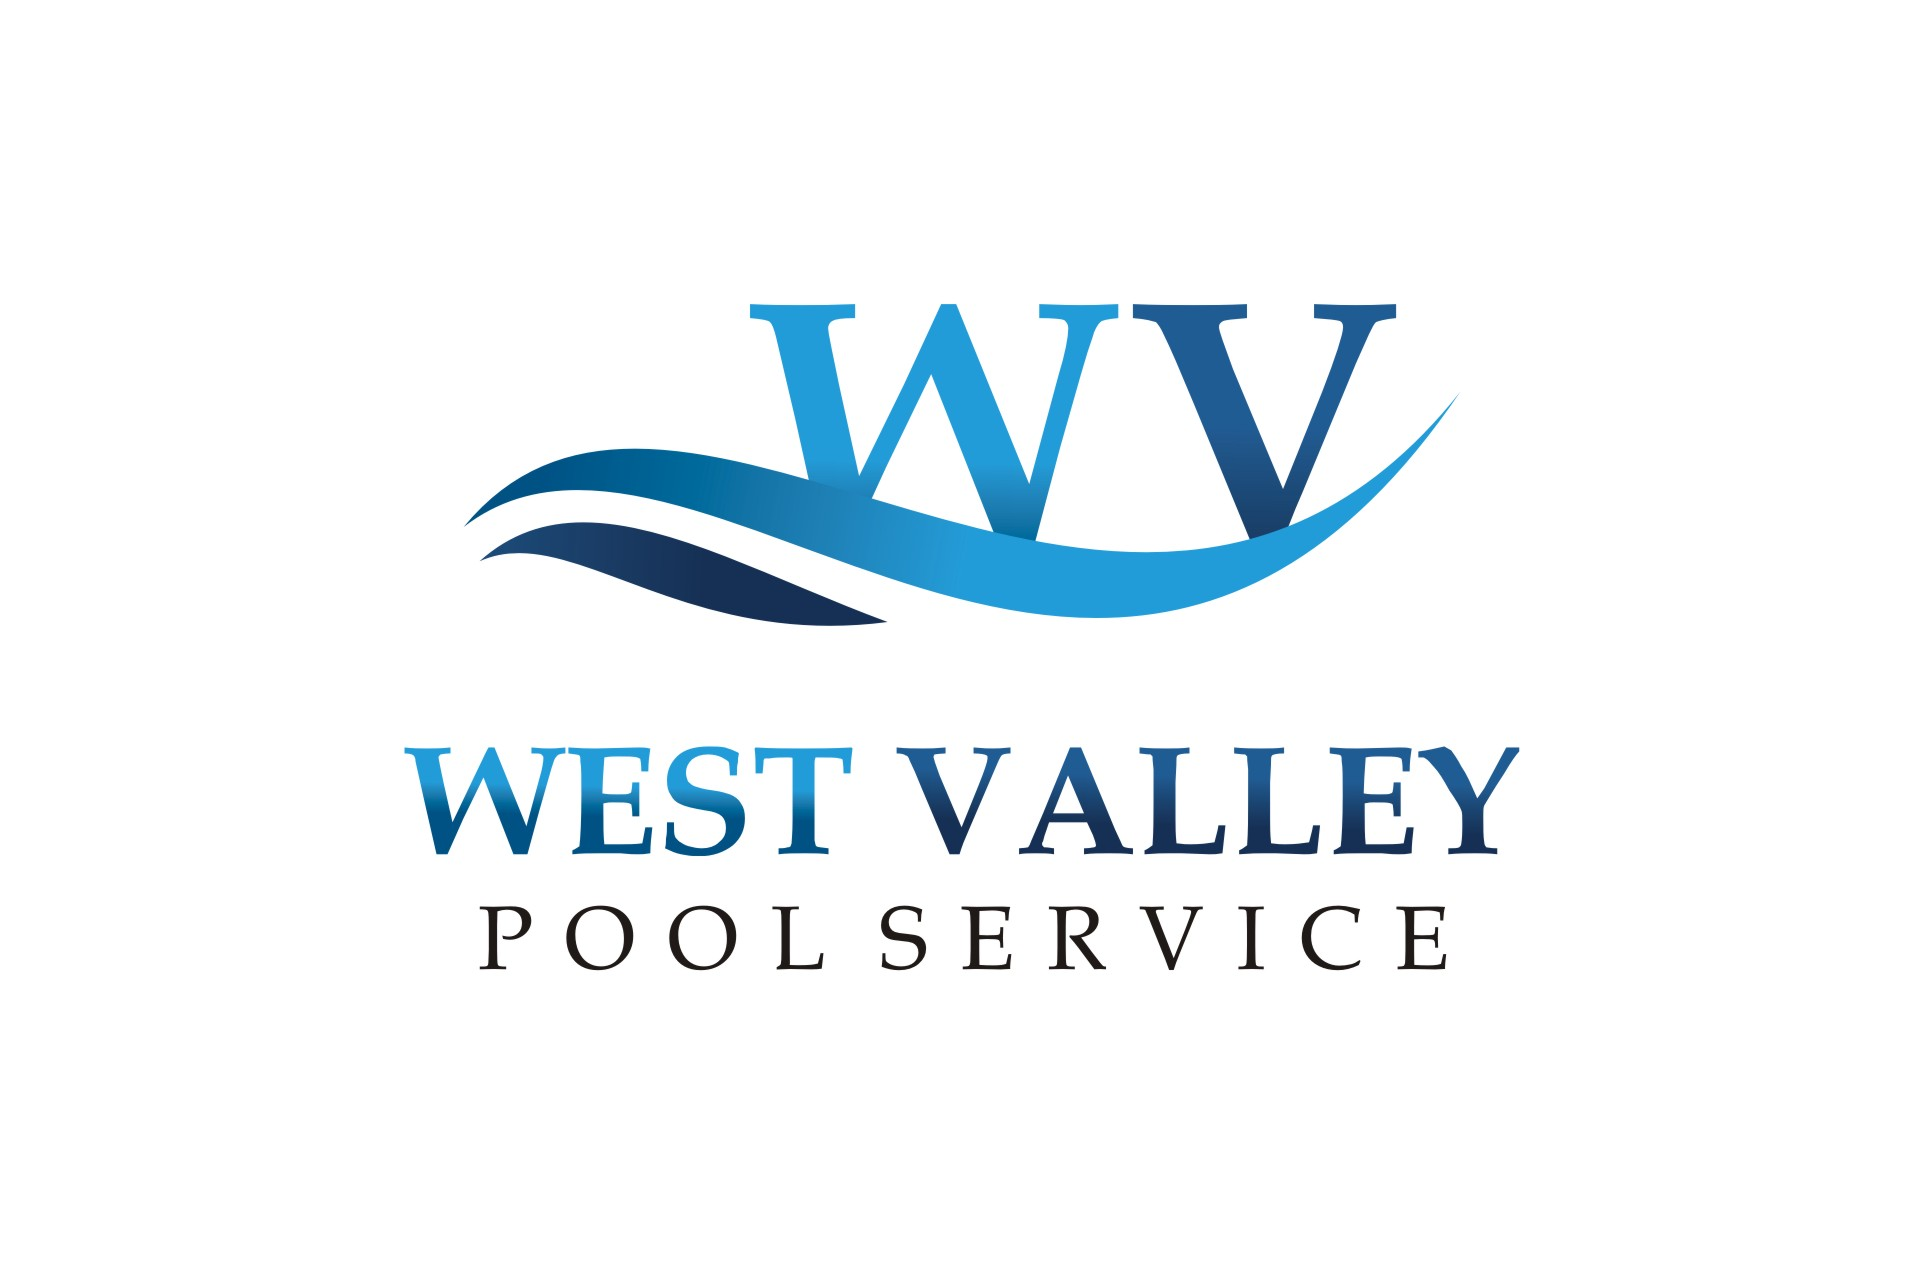 Logo Design by Karthick Flygraphics - Entry No. 102 in the Logo Design Contest Clever Logo Design for West Valley Pool Service.